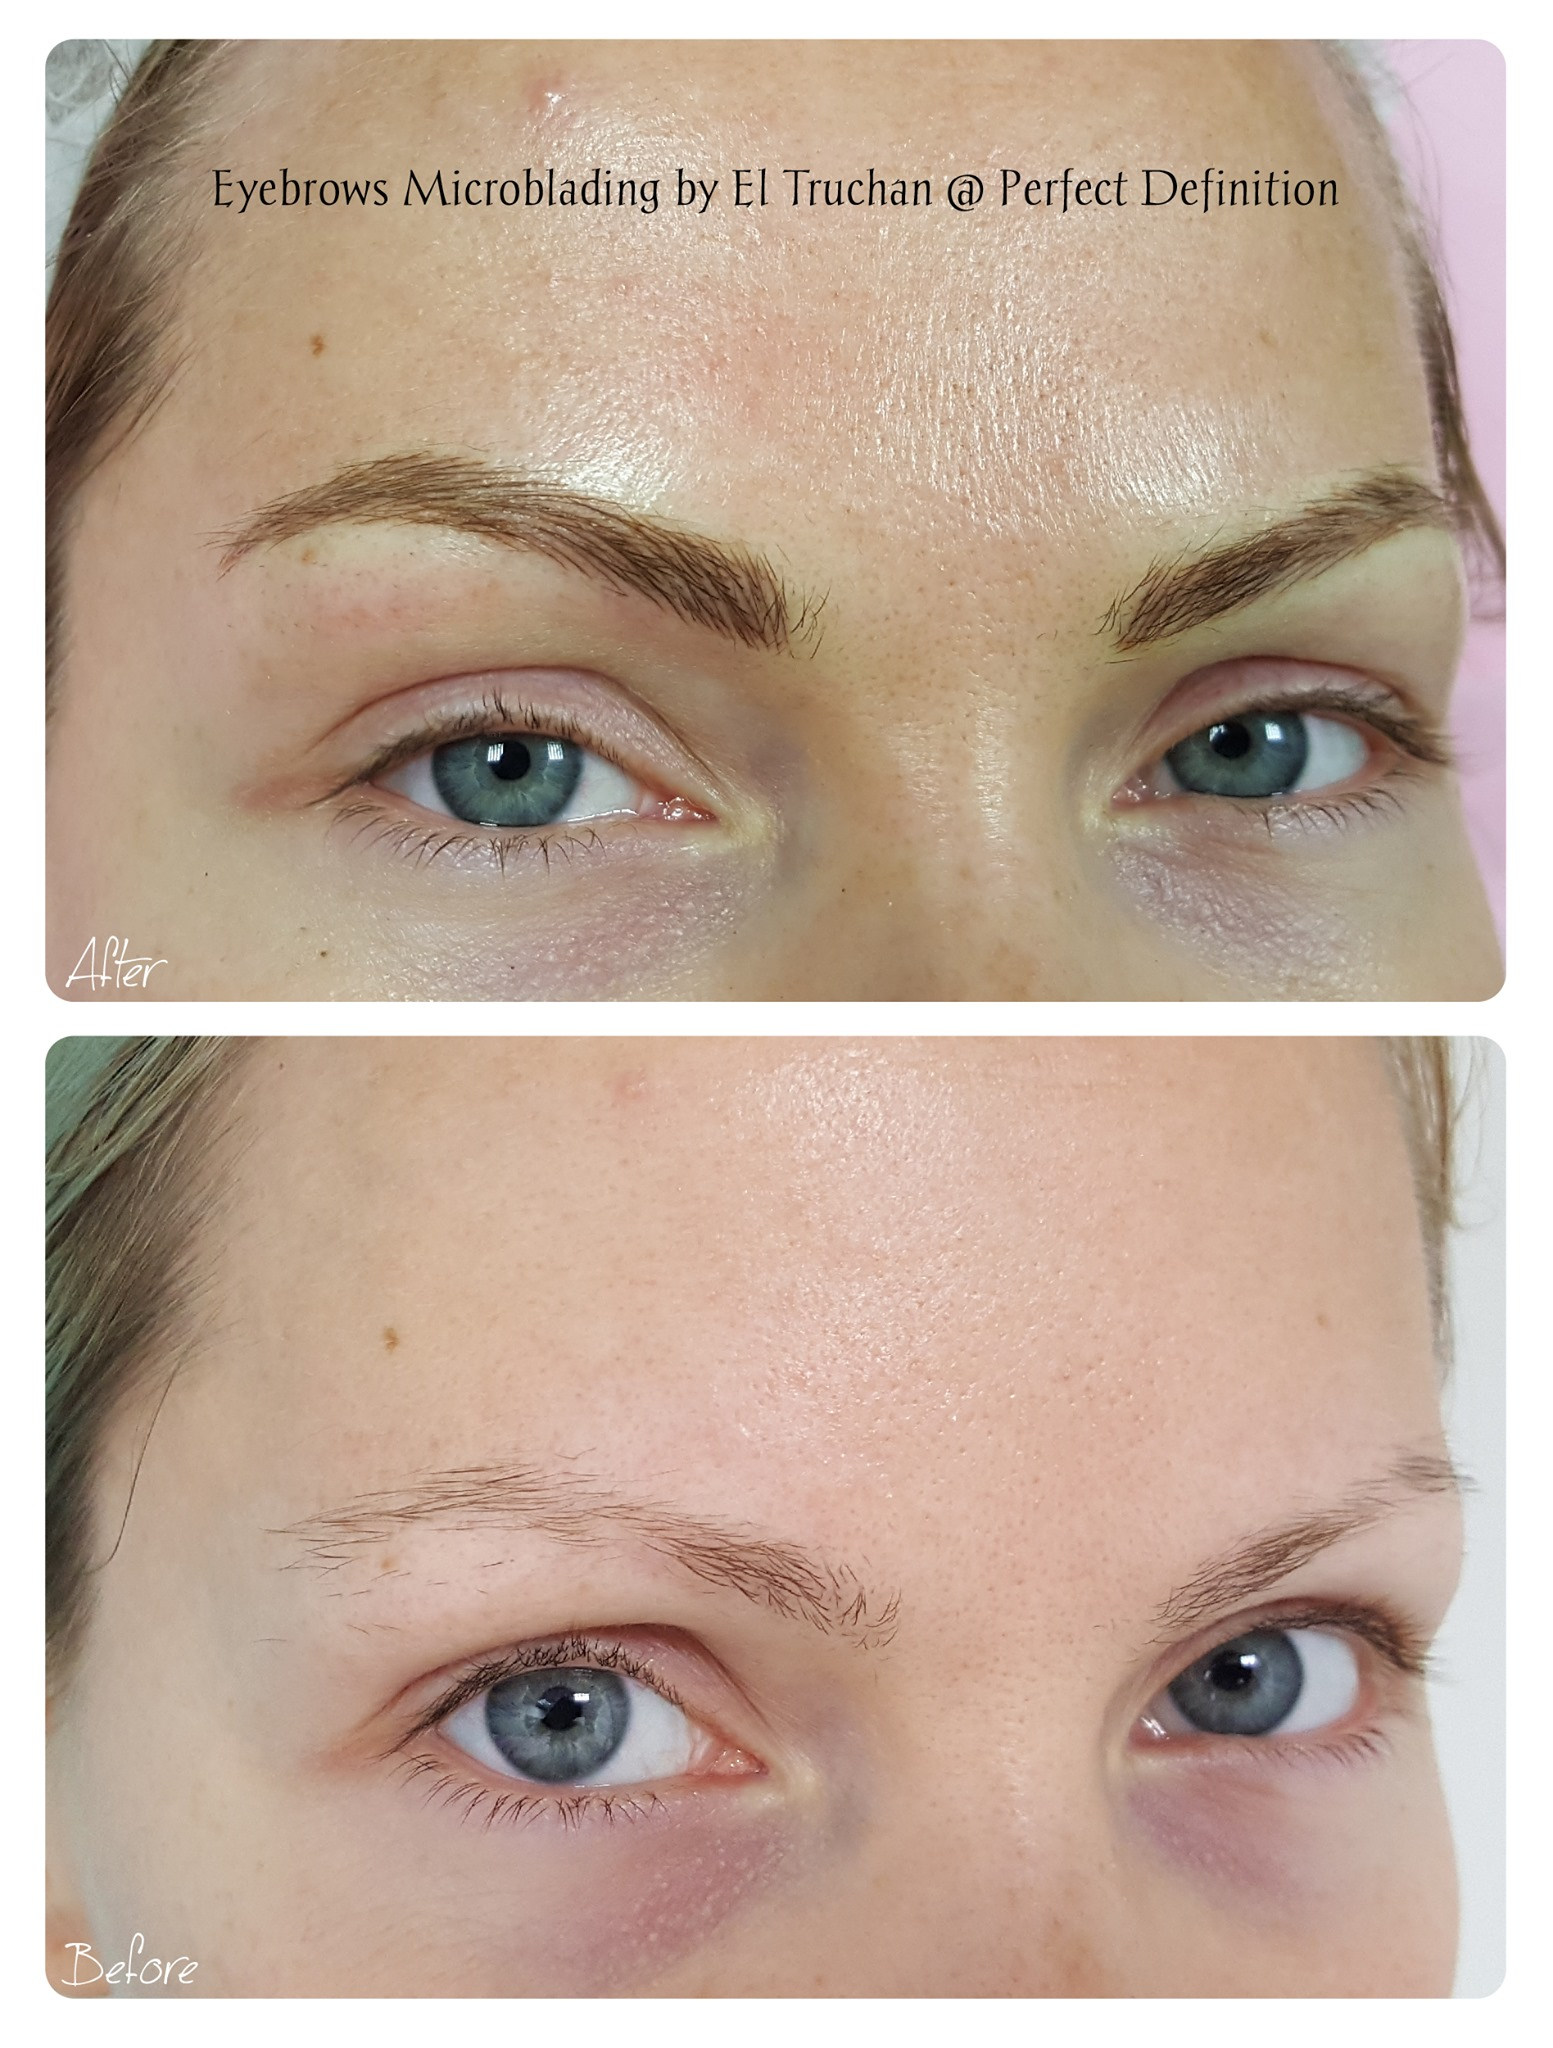 Eyebrows Microblading by El Truchan @ Pe